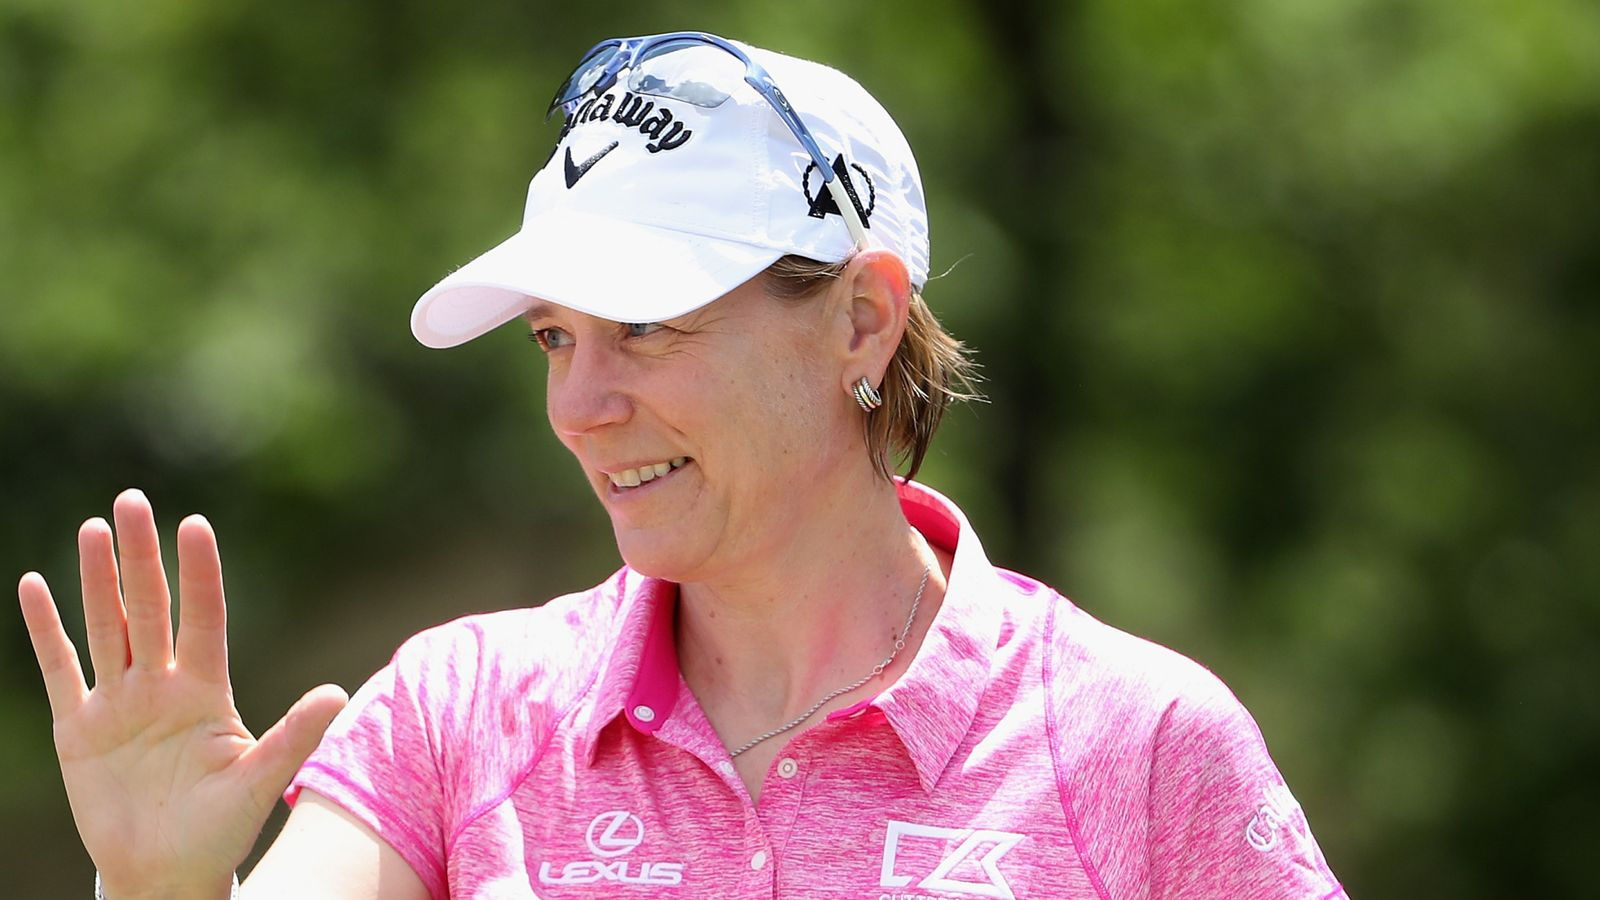 Top amateurs to compete in Argentina for place in Women's British Open